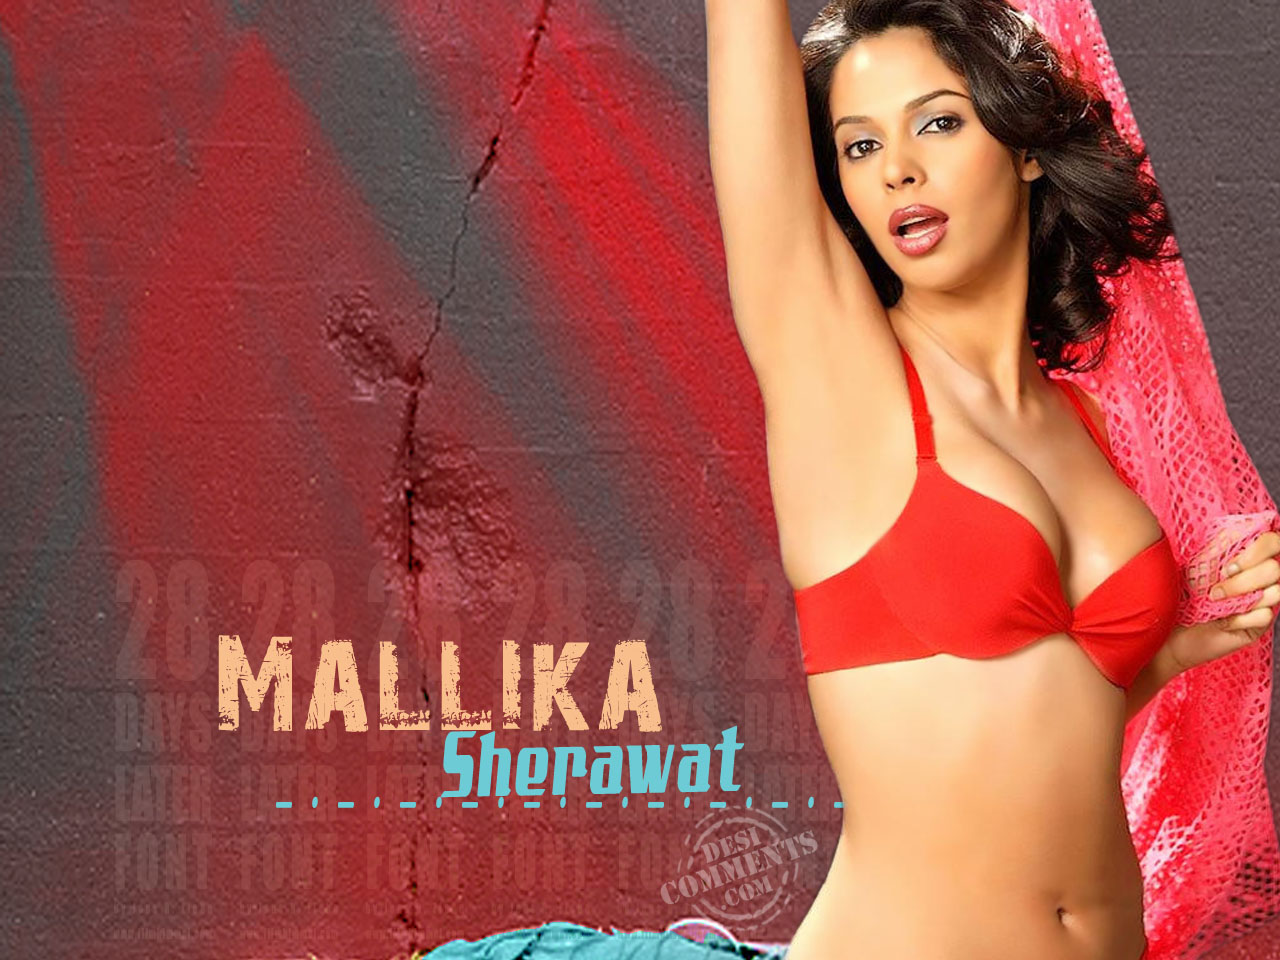 hot mallika sherawat - desicomments